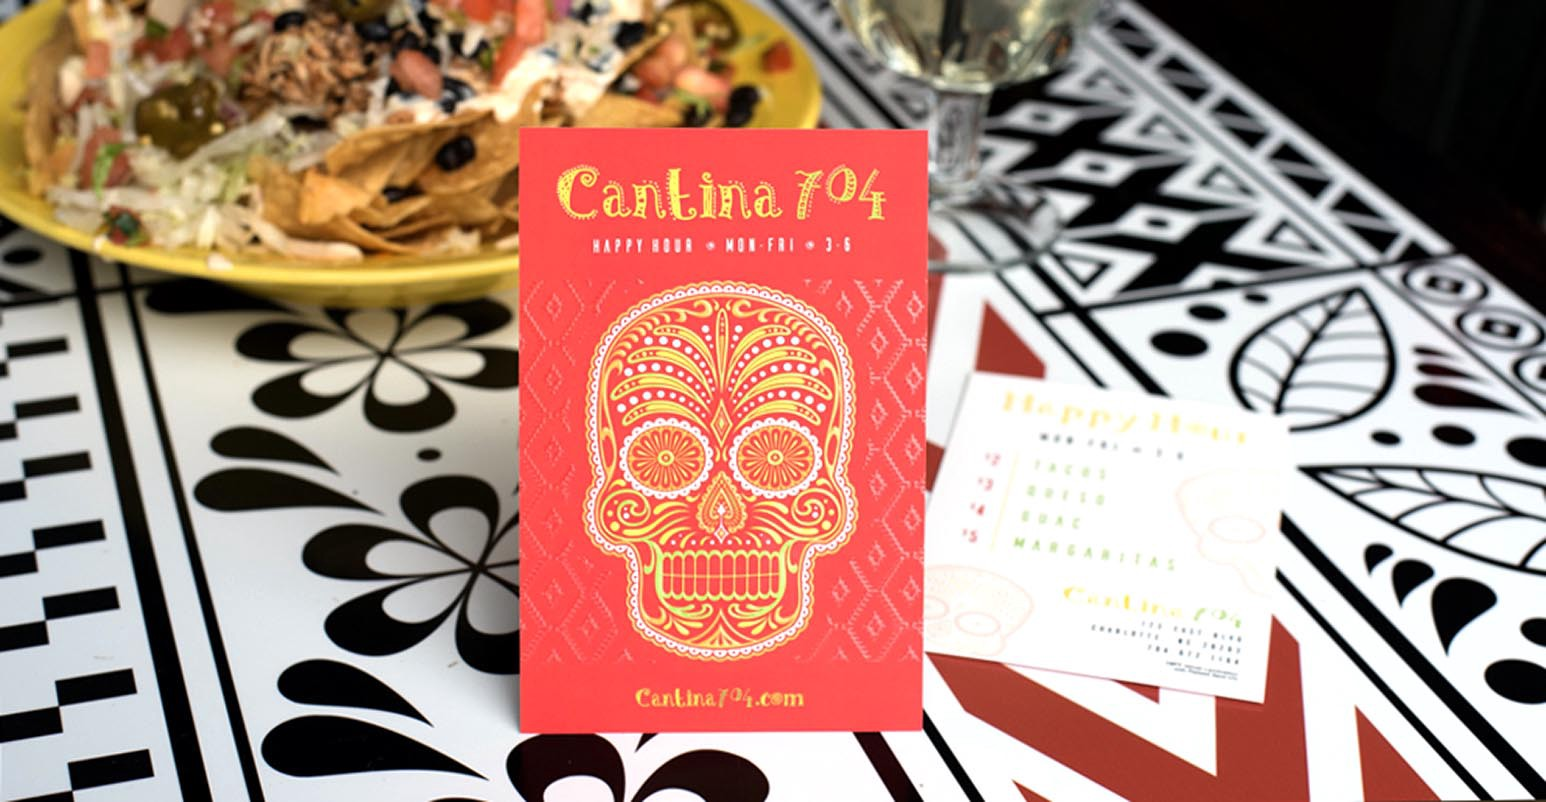 Postcards are great for displaying daily food and drink specials.